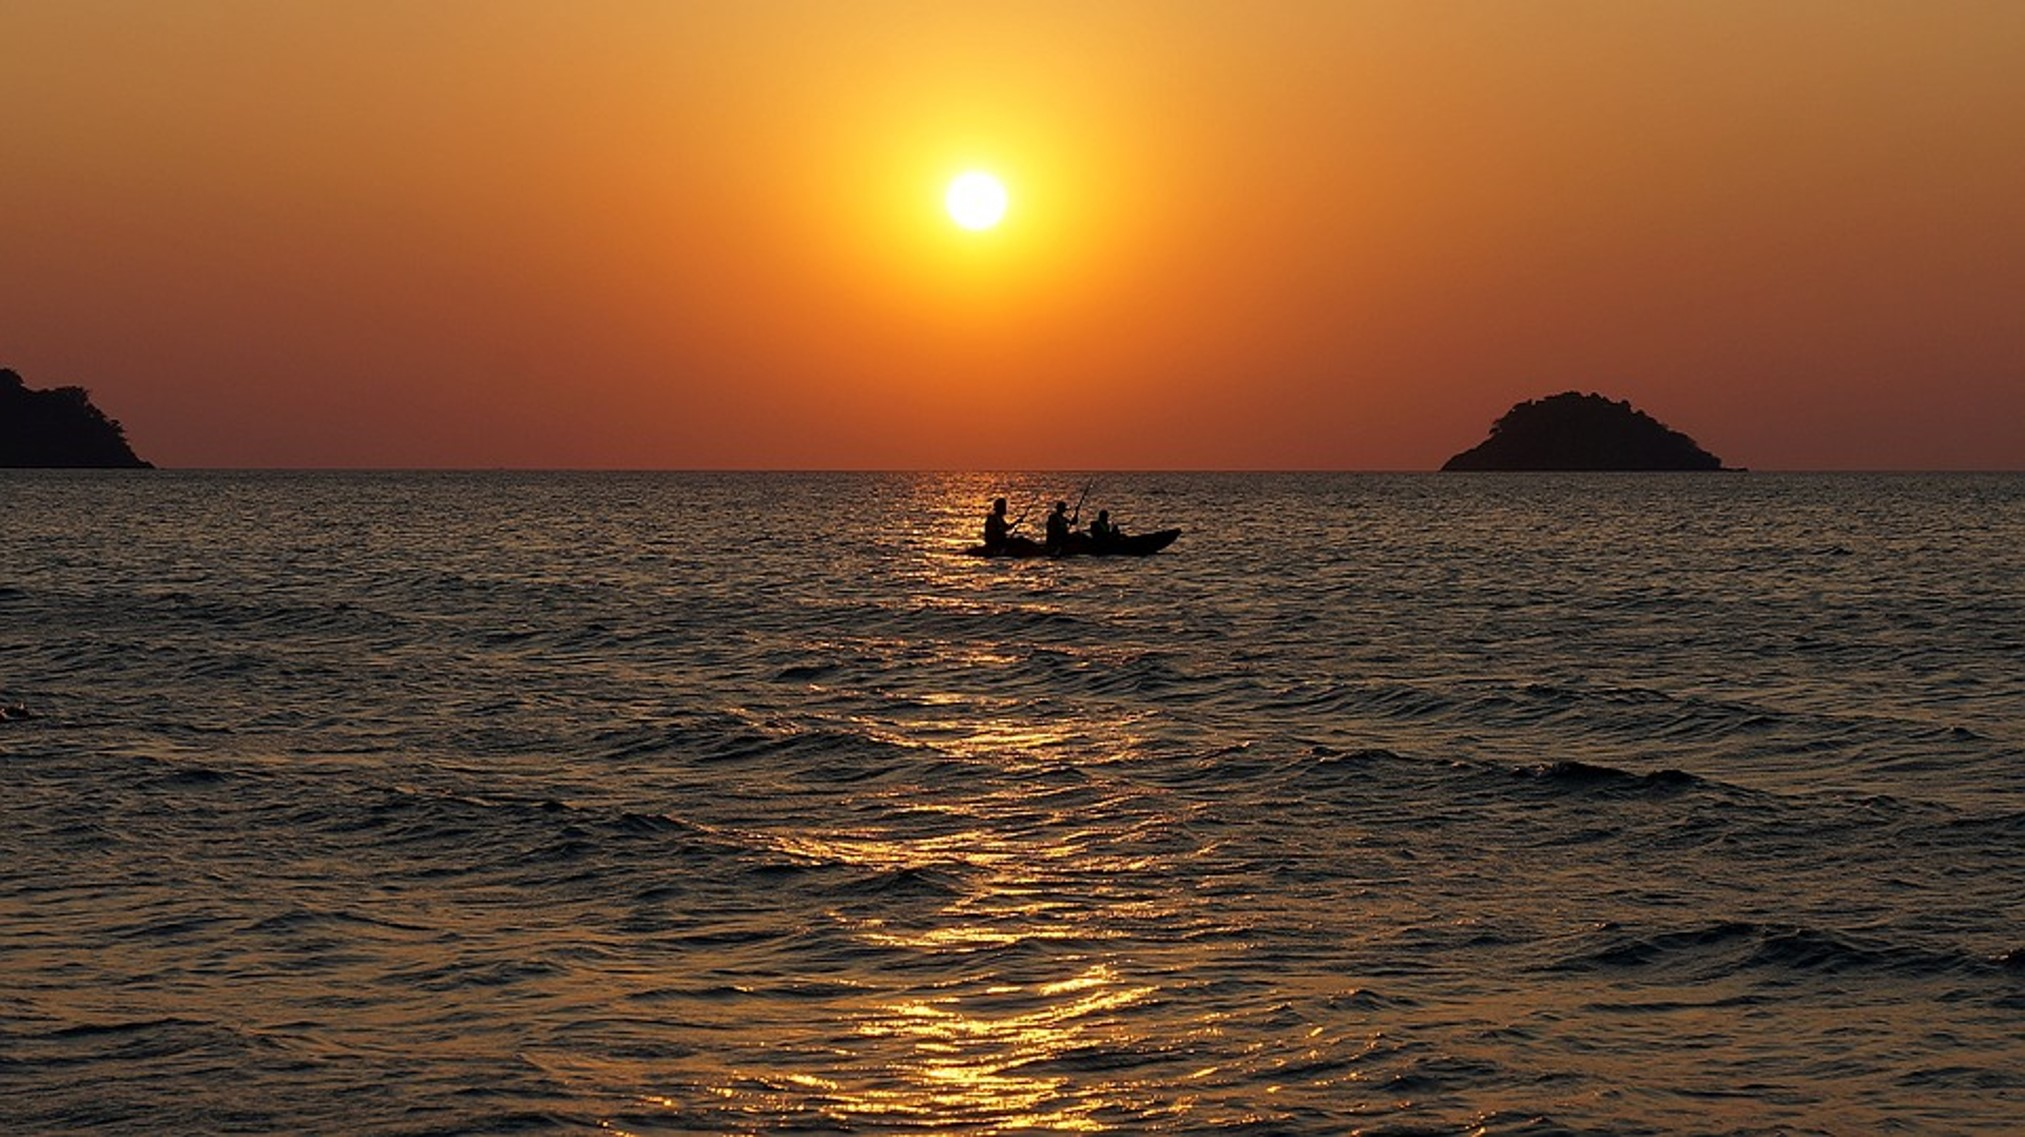 small boat with thtree people on a peacful ocean at nearly sundaown. Orange sky very low golden sun